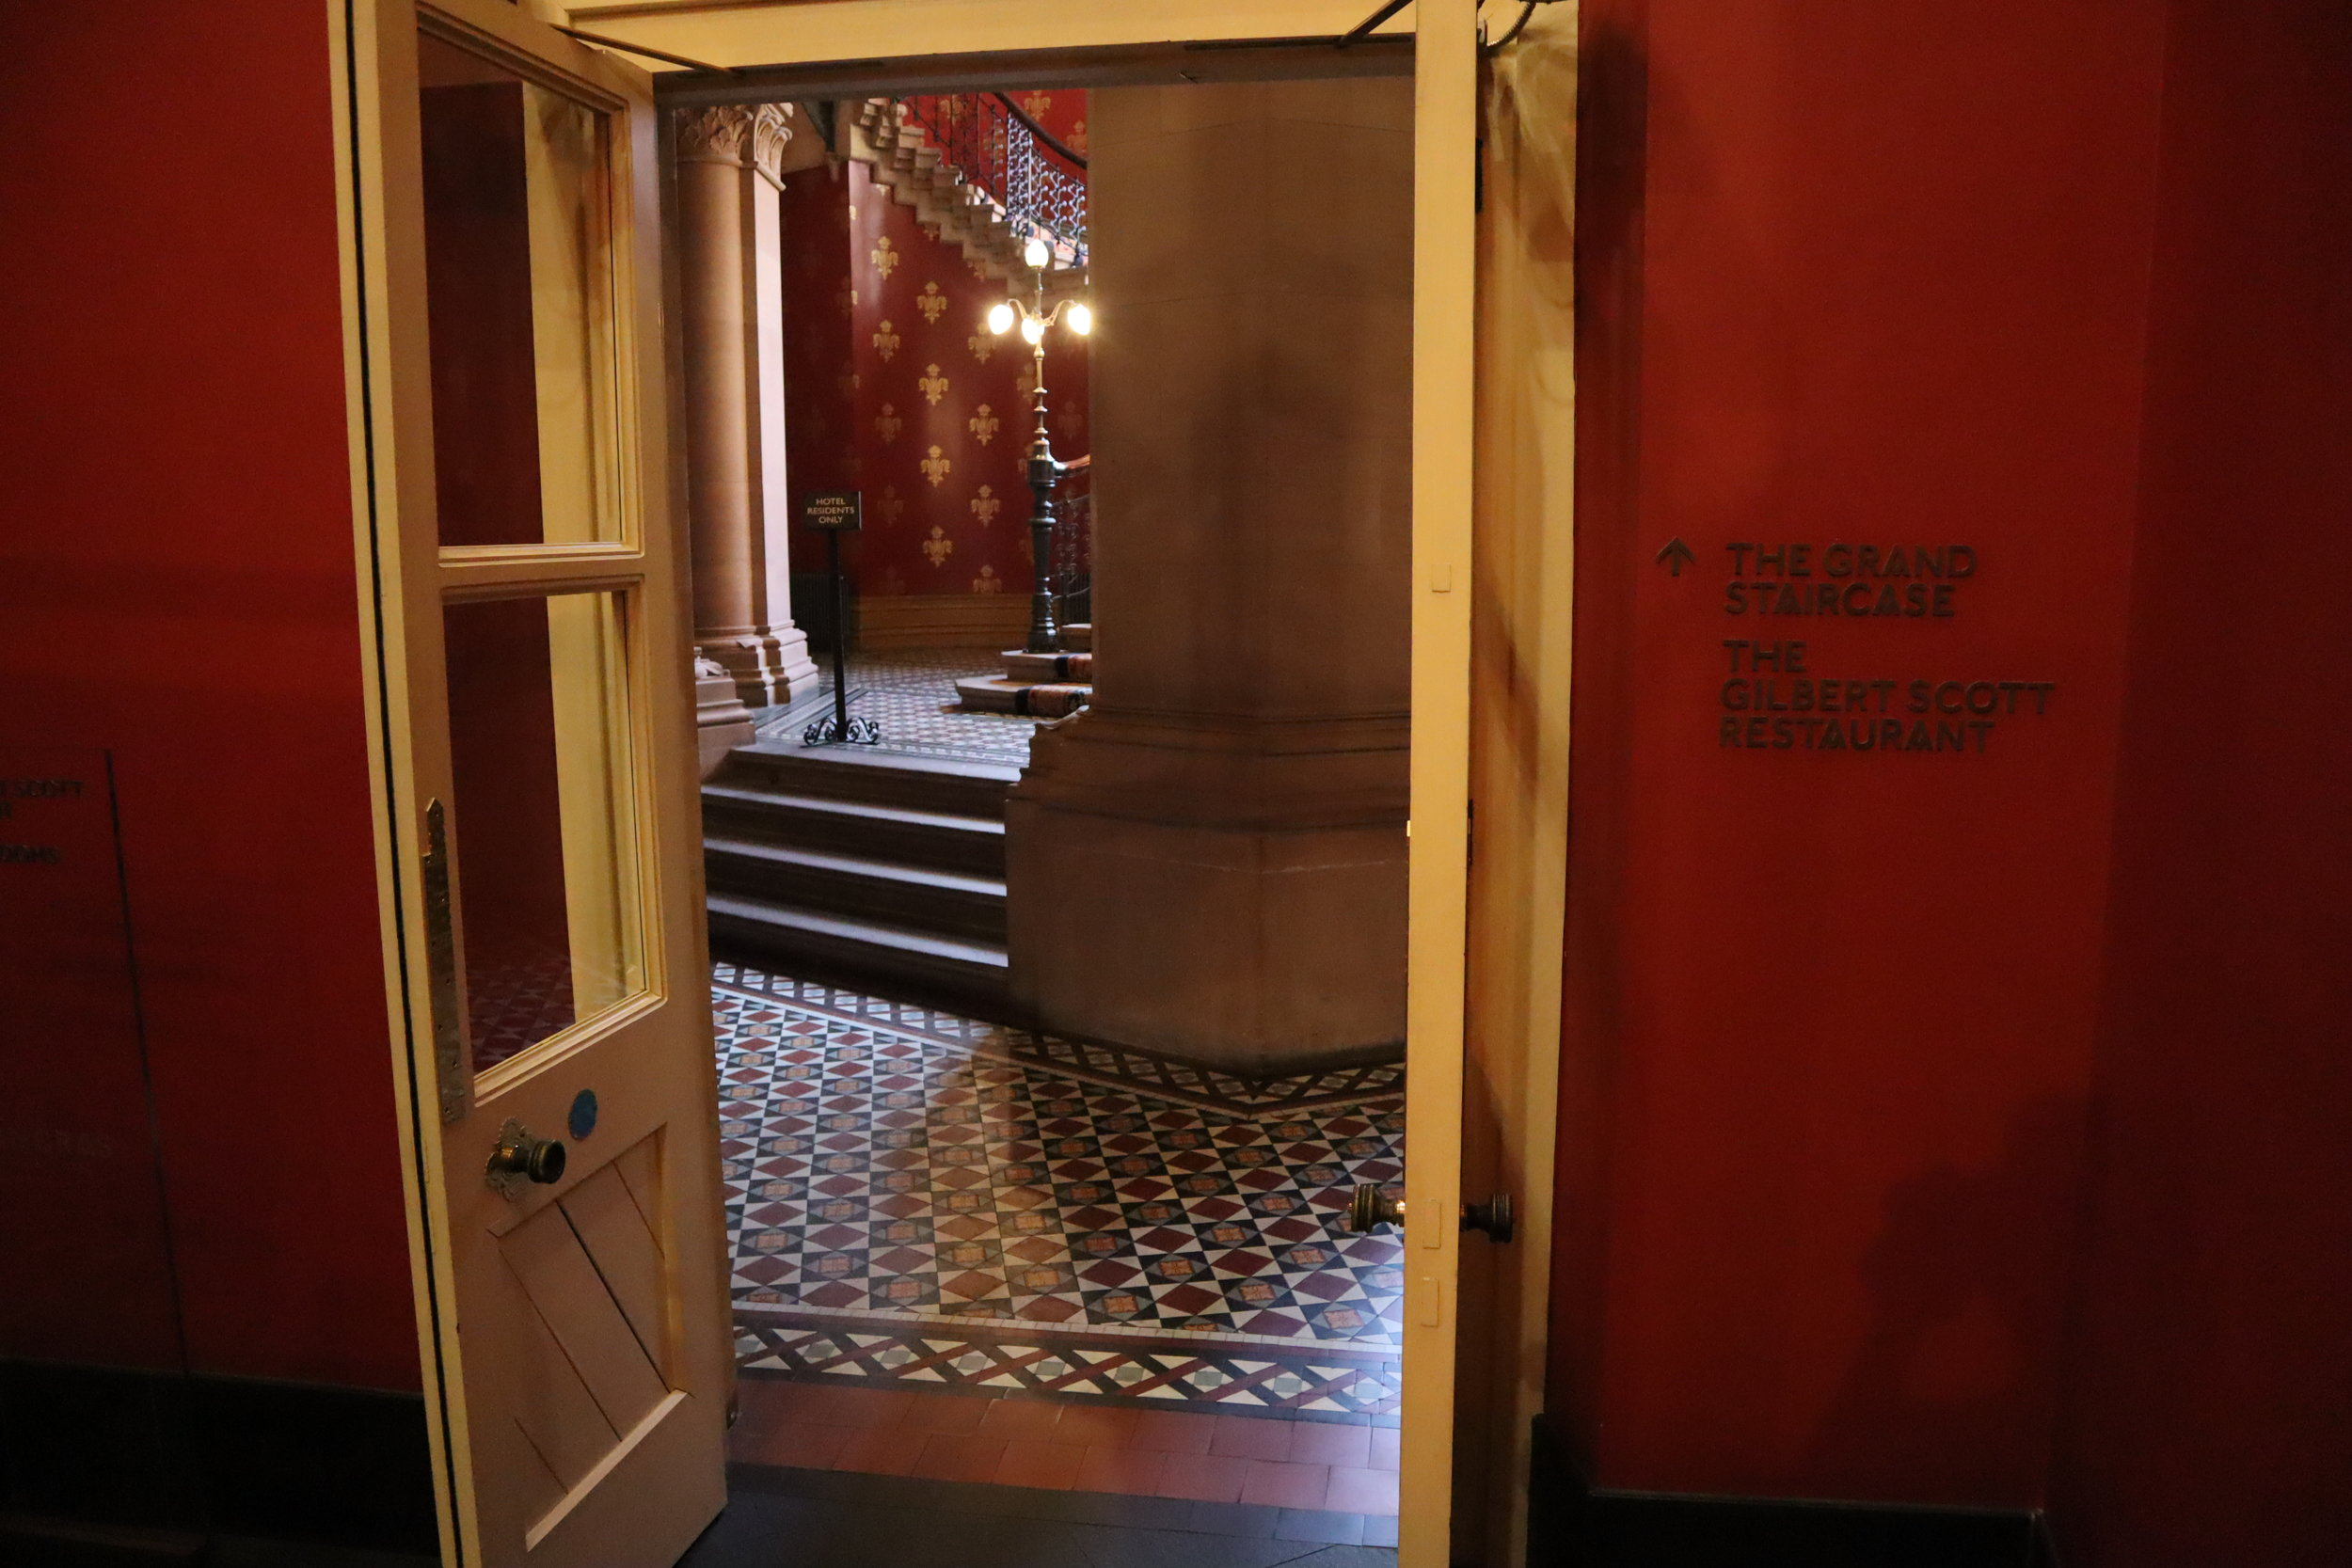 St. Pancras Renaissance Hotel London – Doorway to Chambers Wing